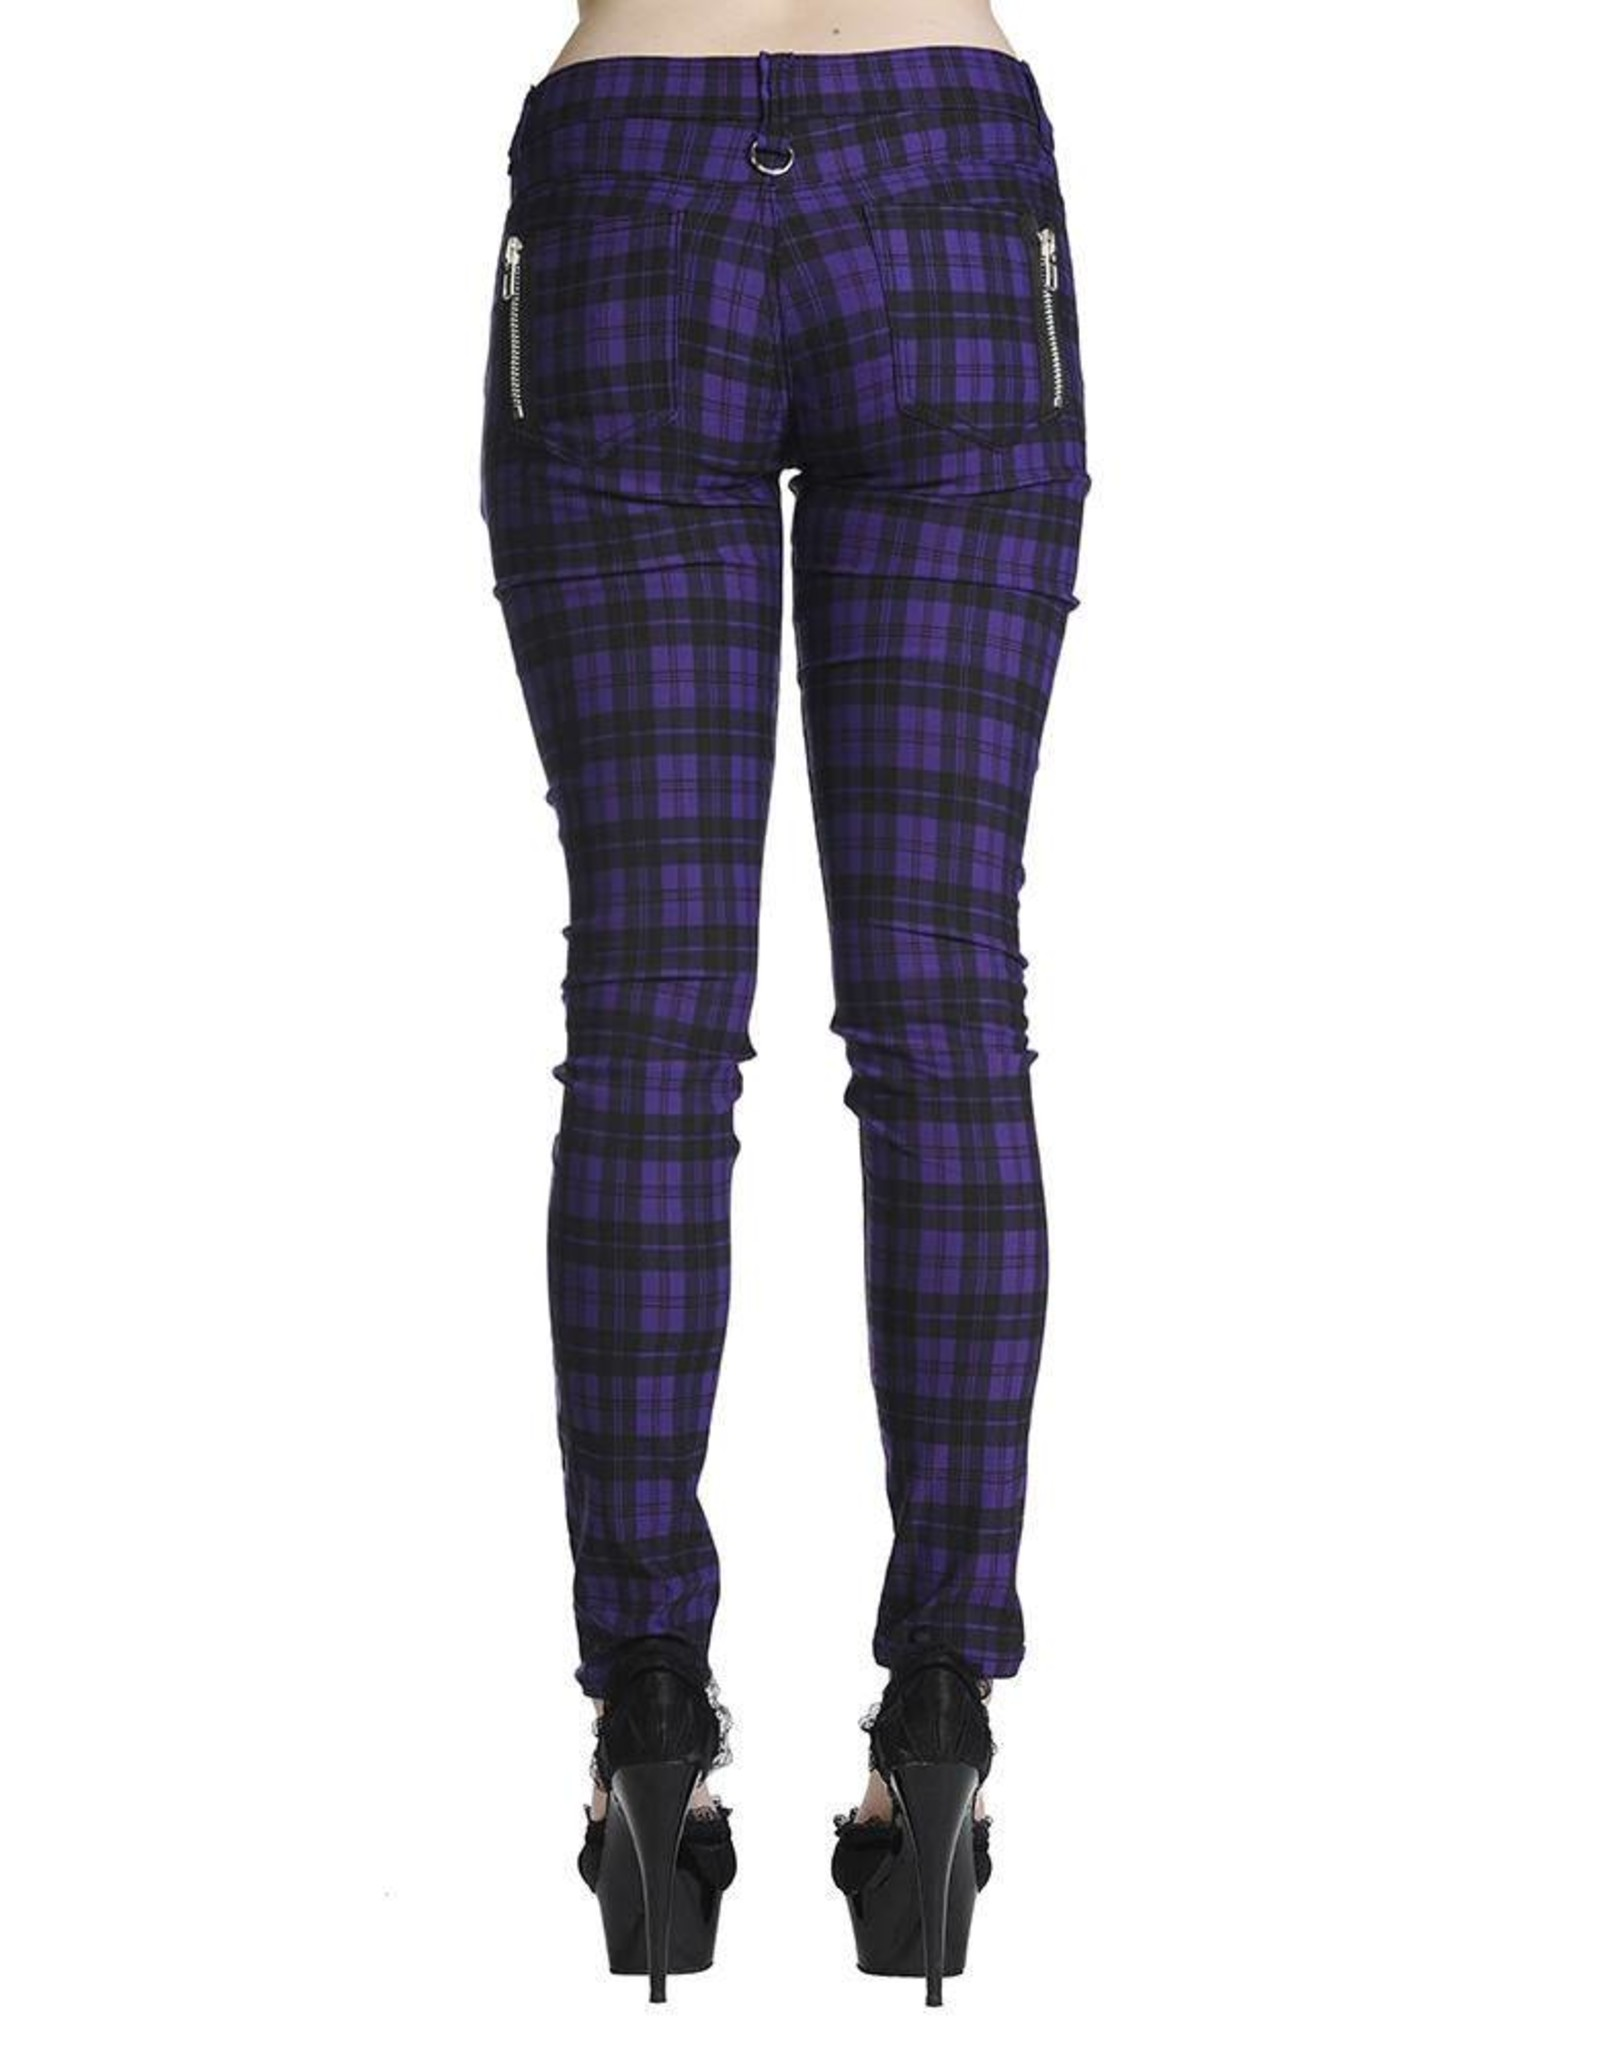 BANNED - Purple Checkered Pant